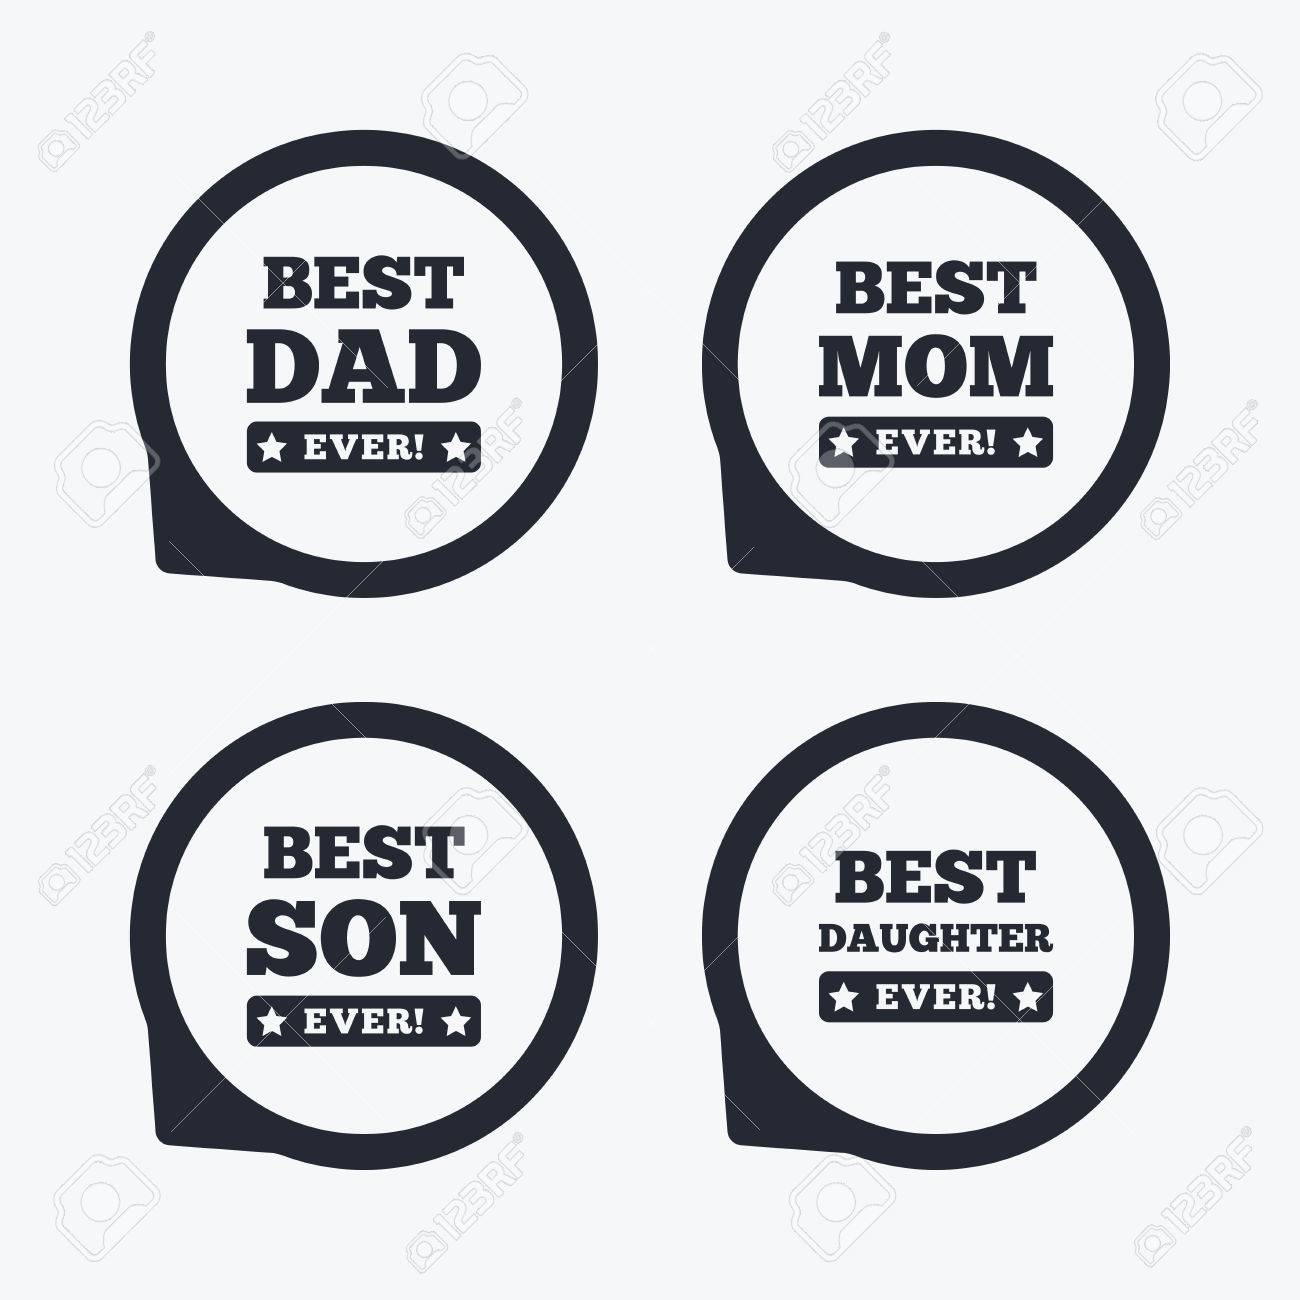 Best Mom And Dad Son And Daughter Icons Awards With Exclamation